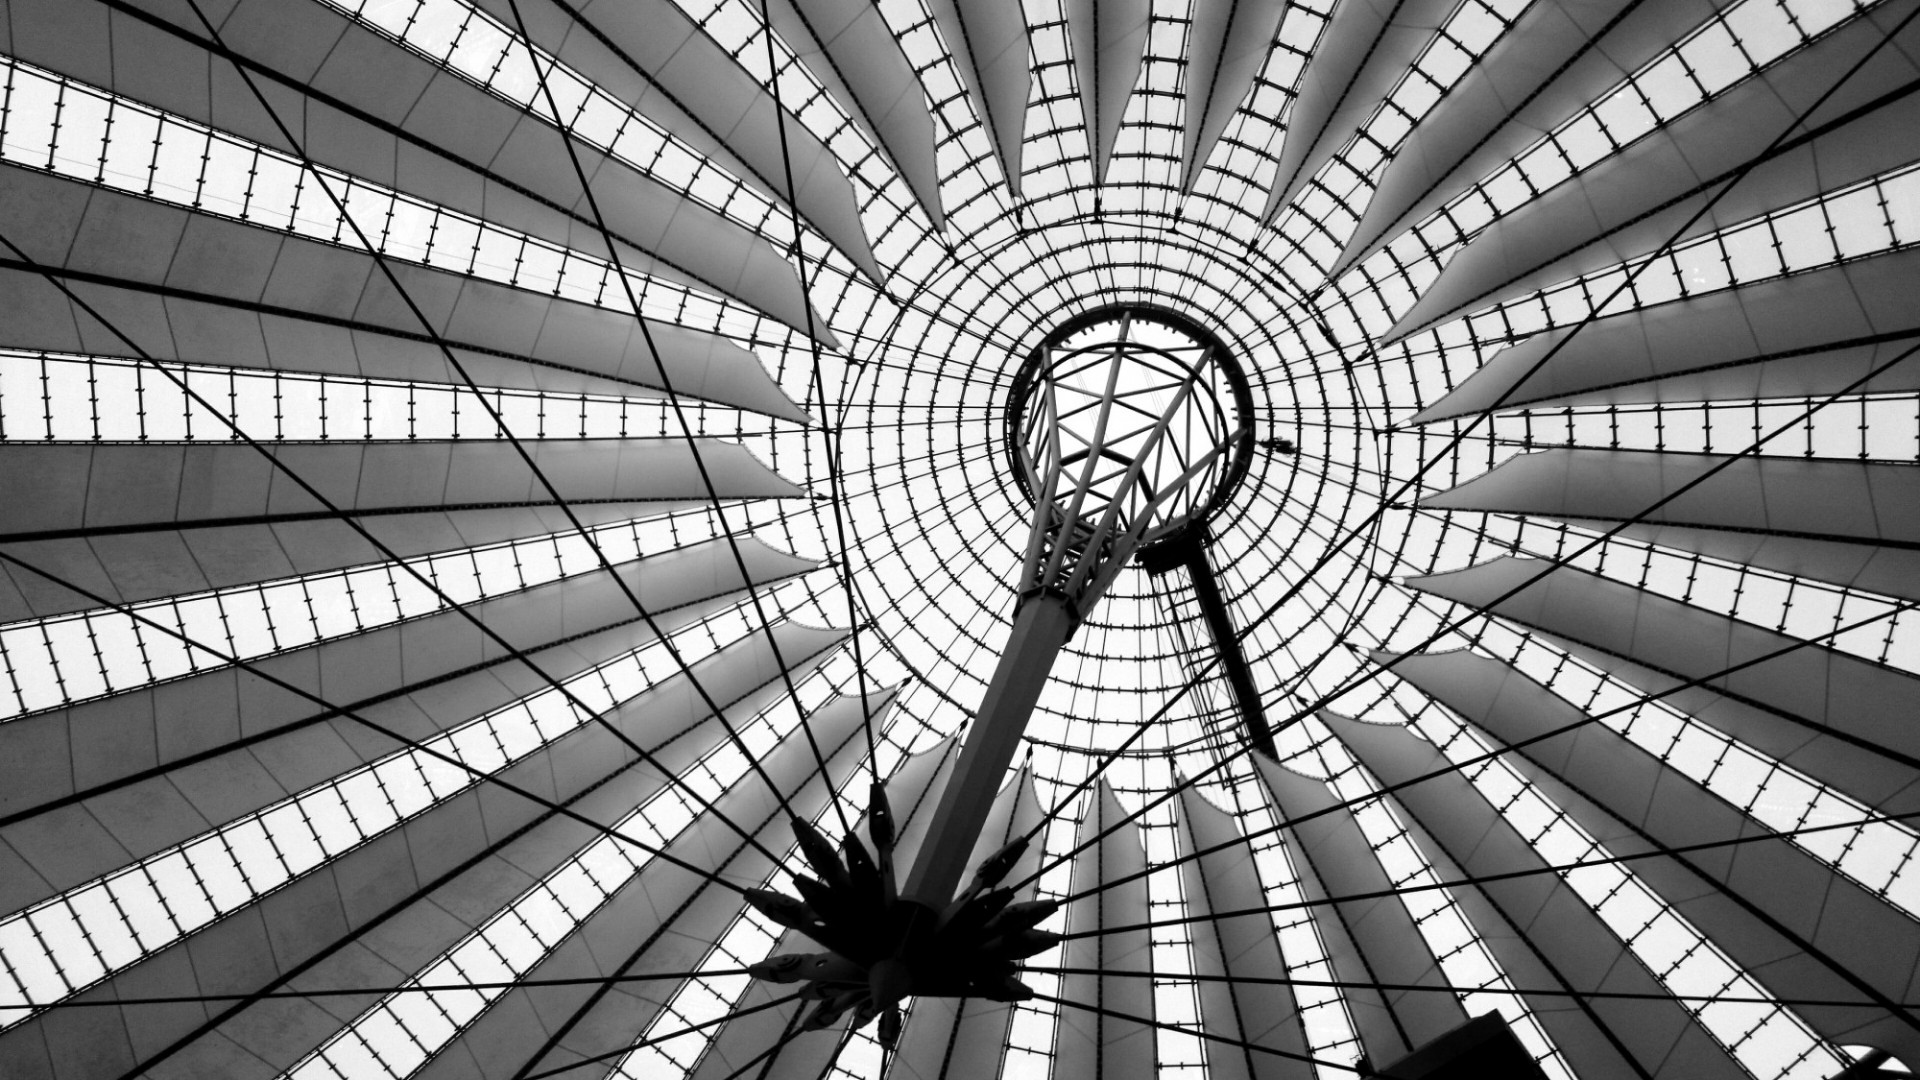 Roof of Sony Center in Berlin